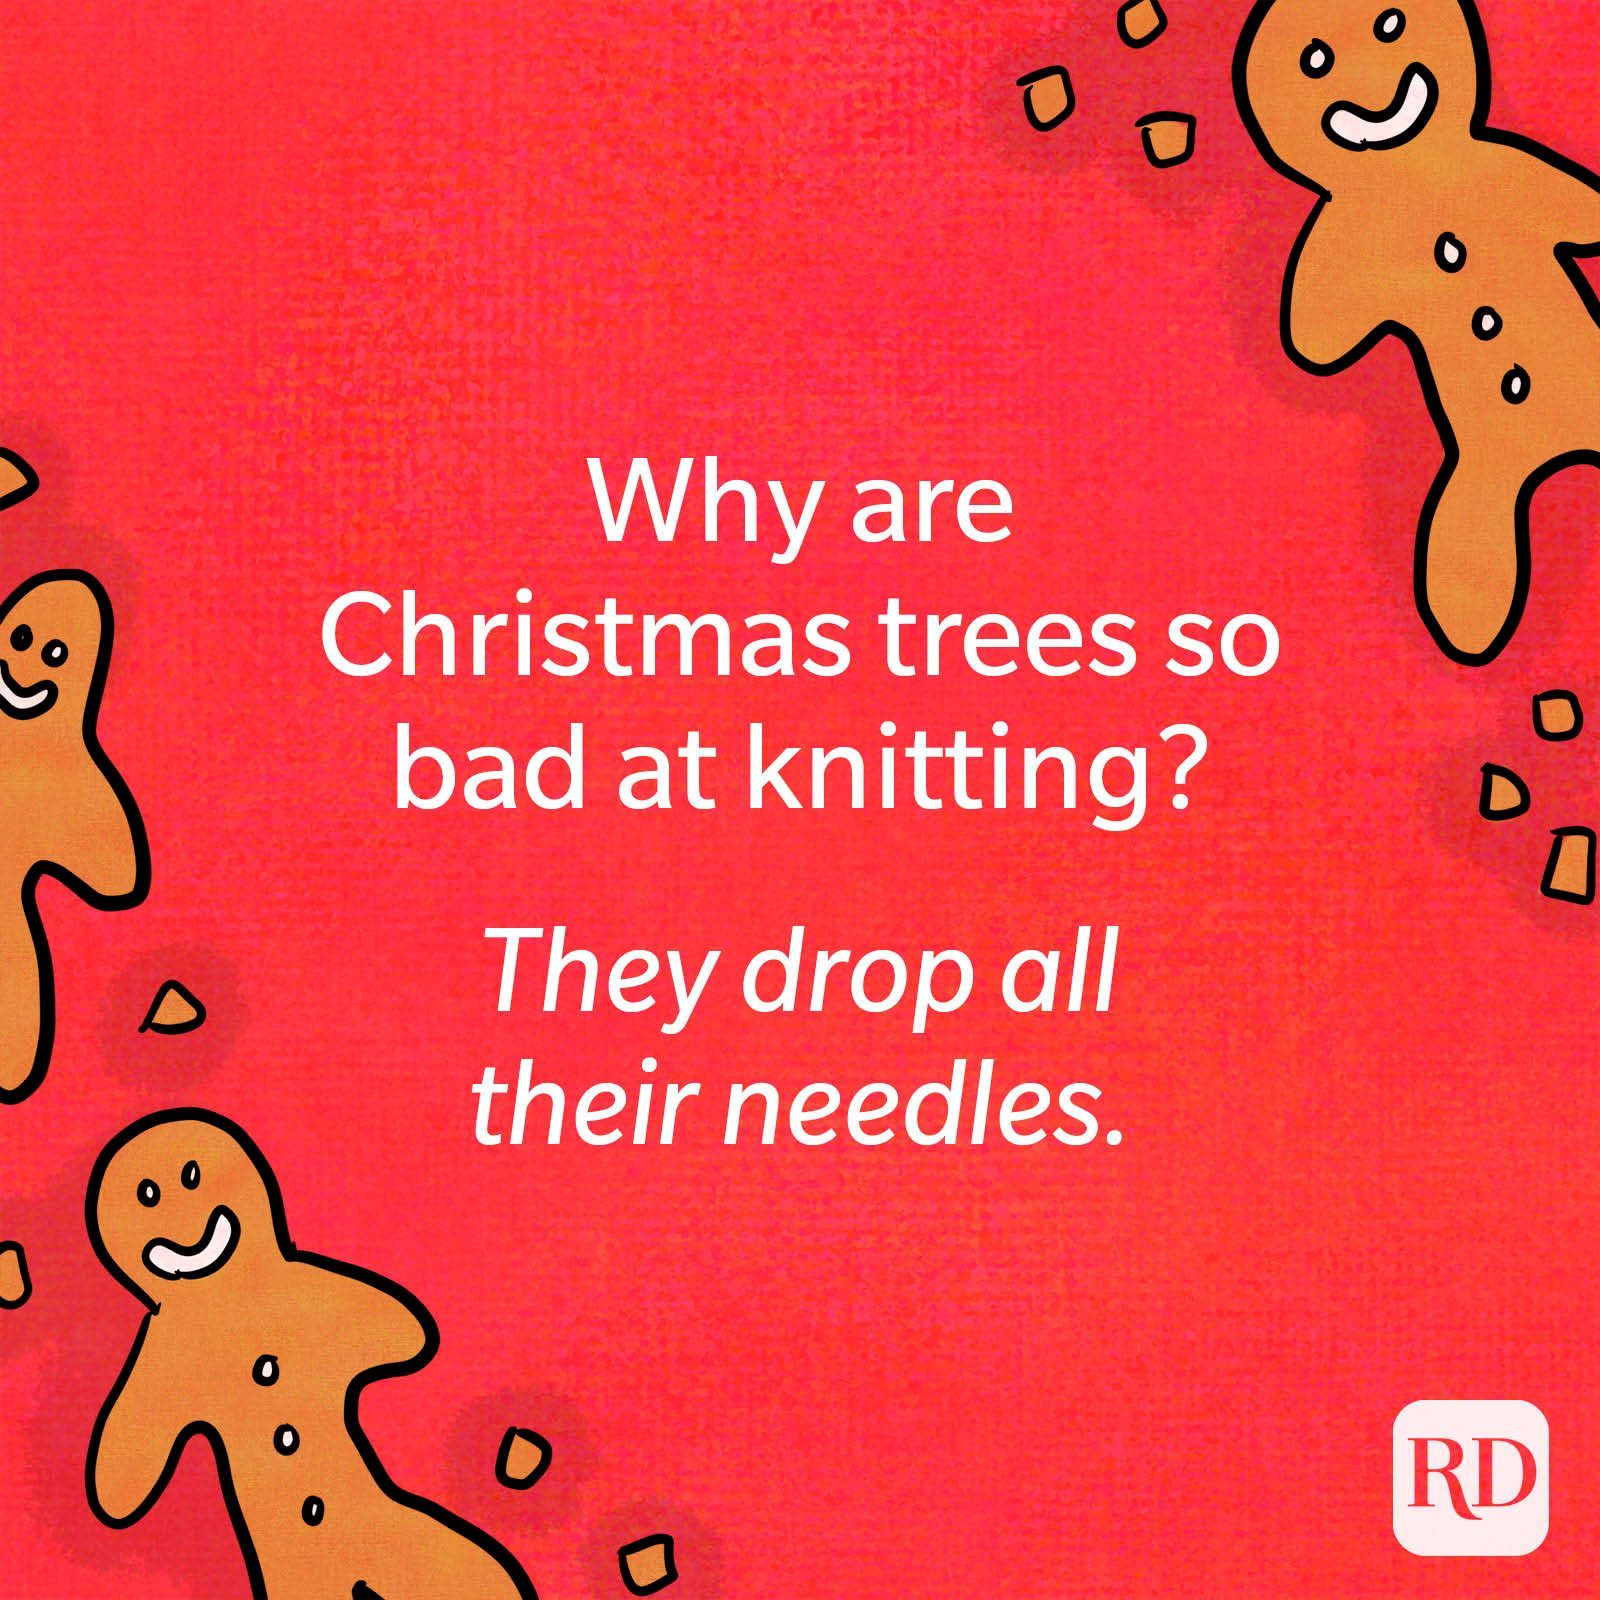 Why are Christmas trees so bad at knitting? They drop all their needles.